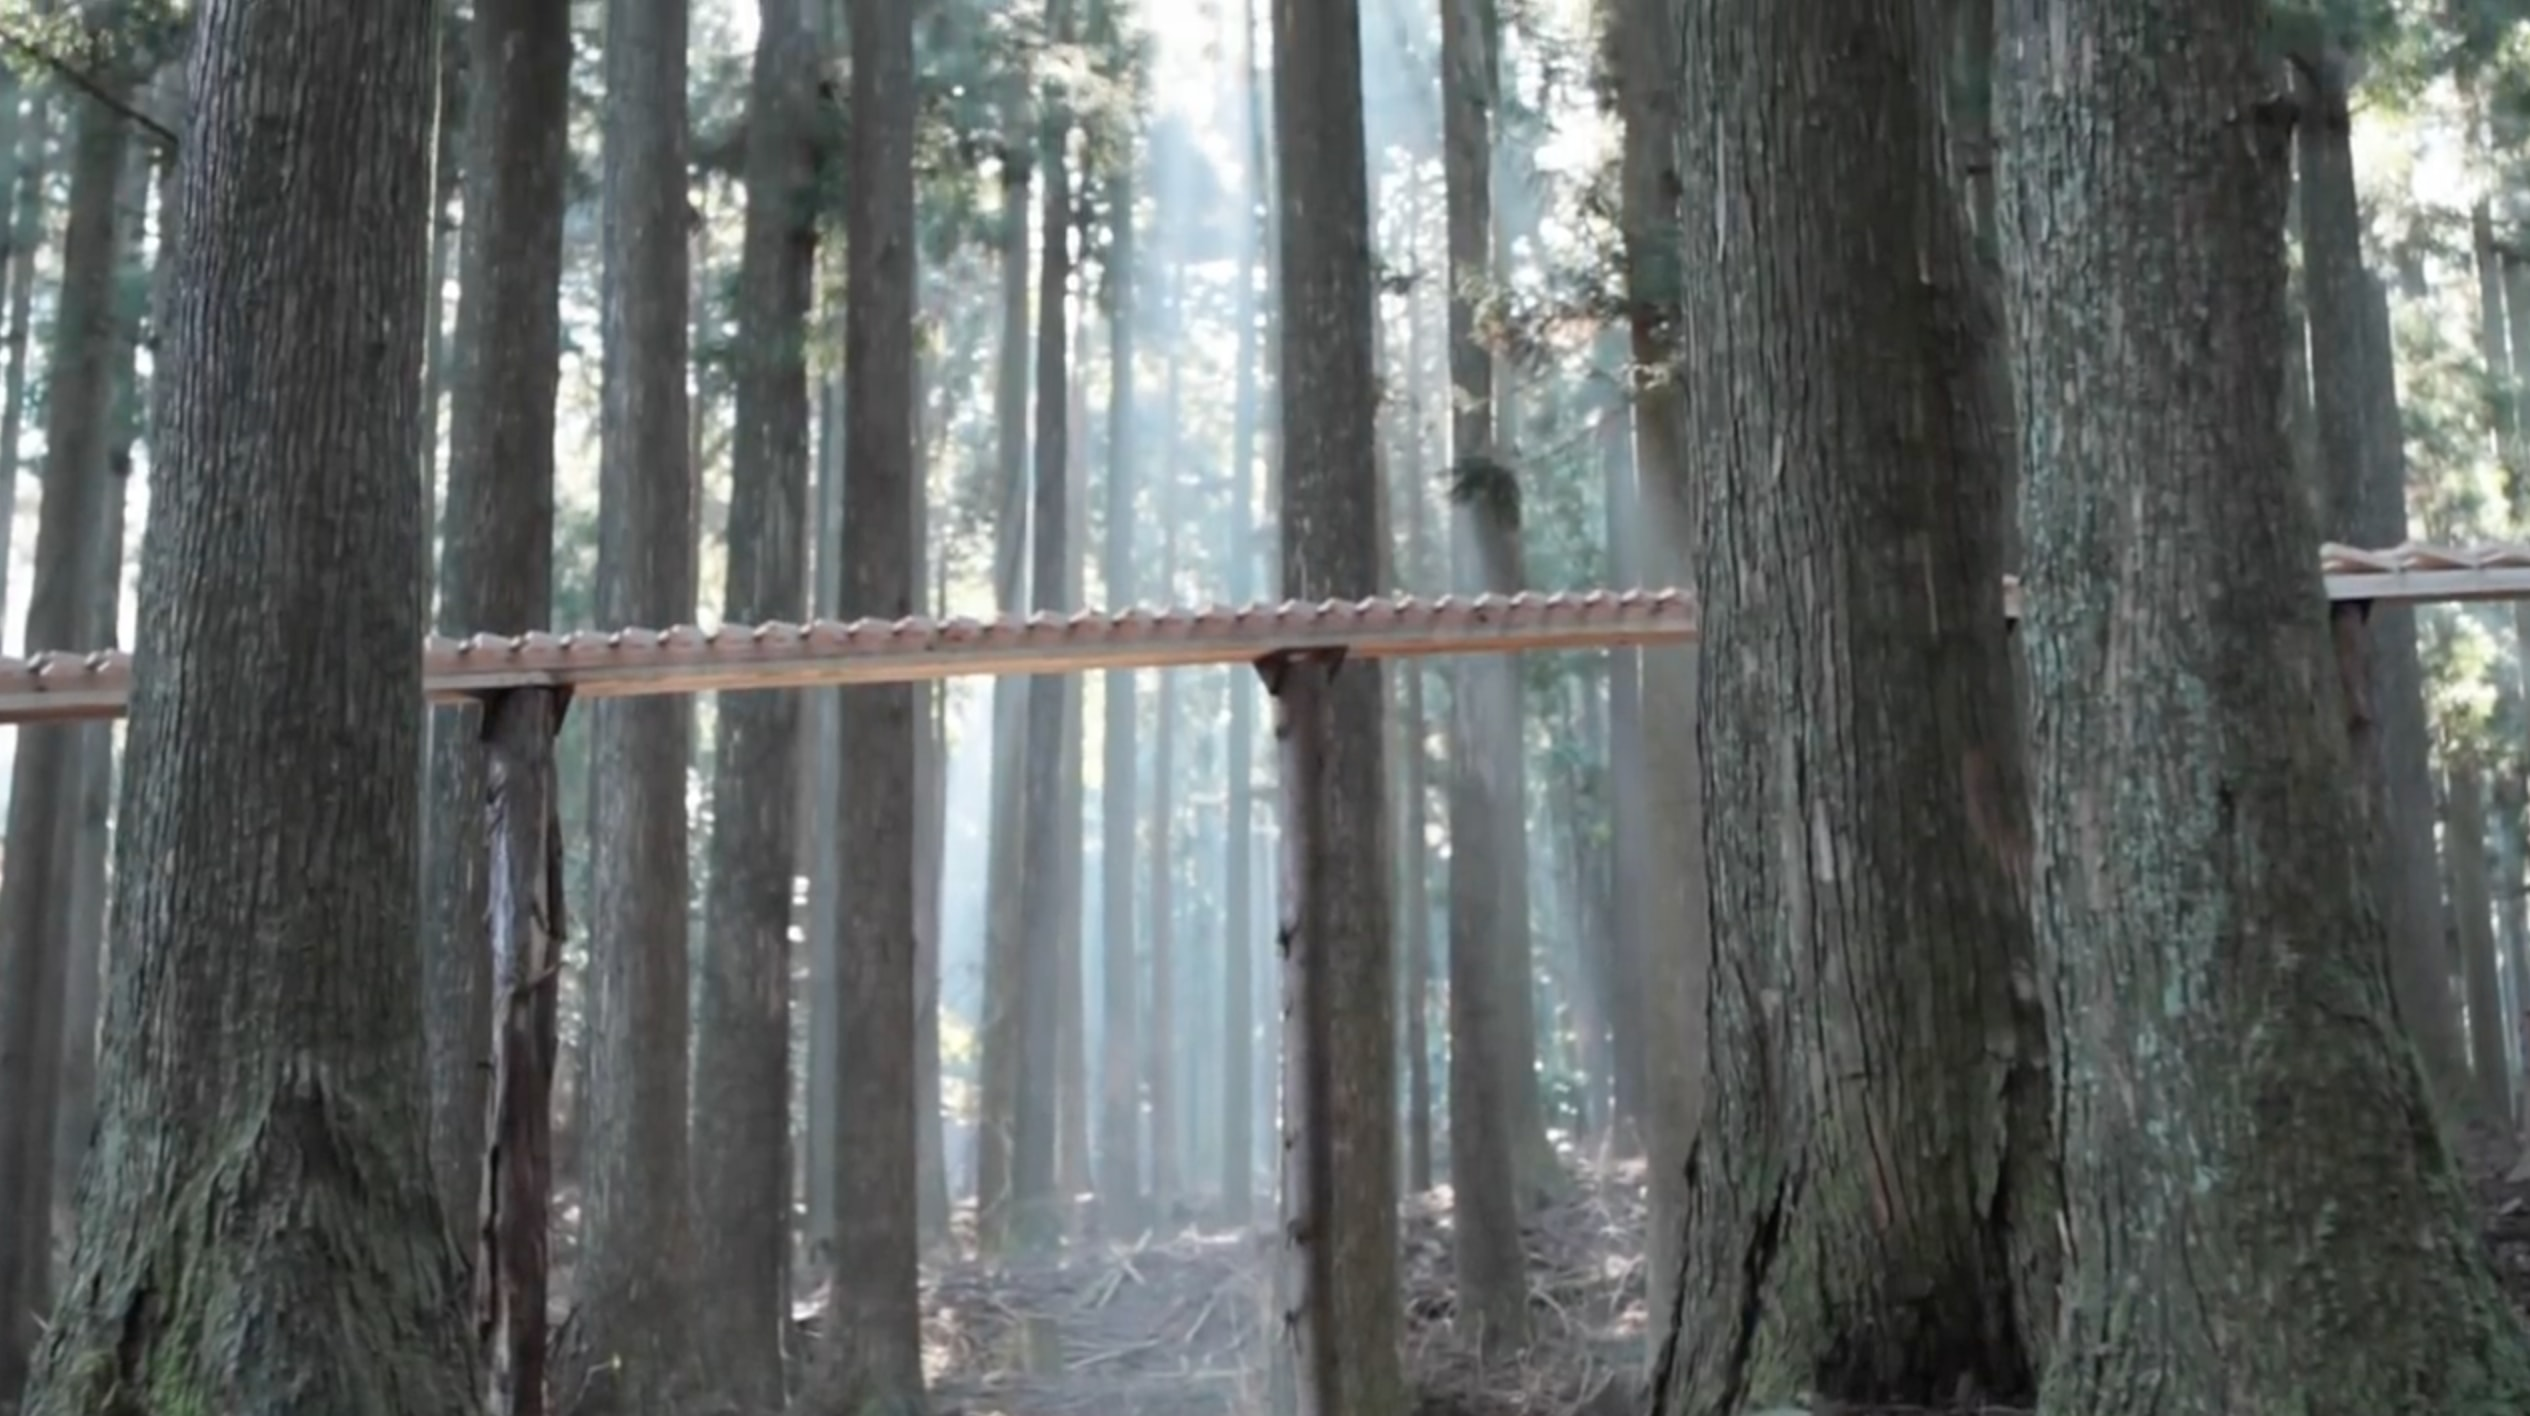 Wooden blocks set up in a forest to create a massive xylophone